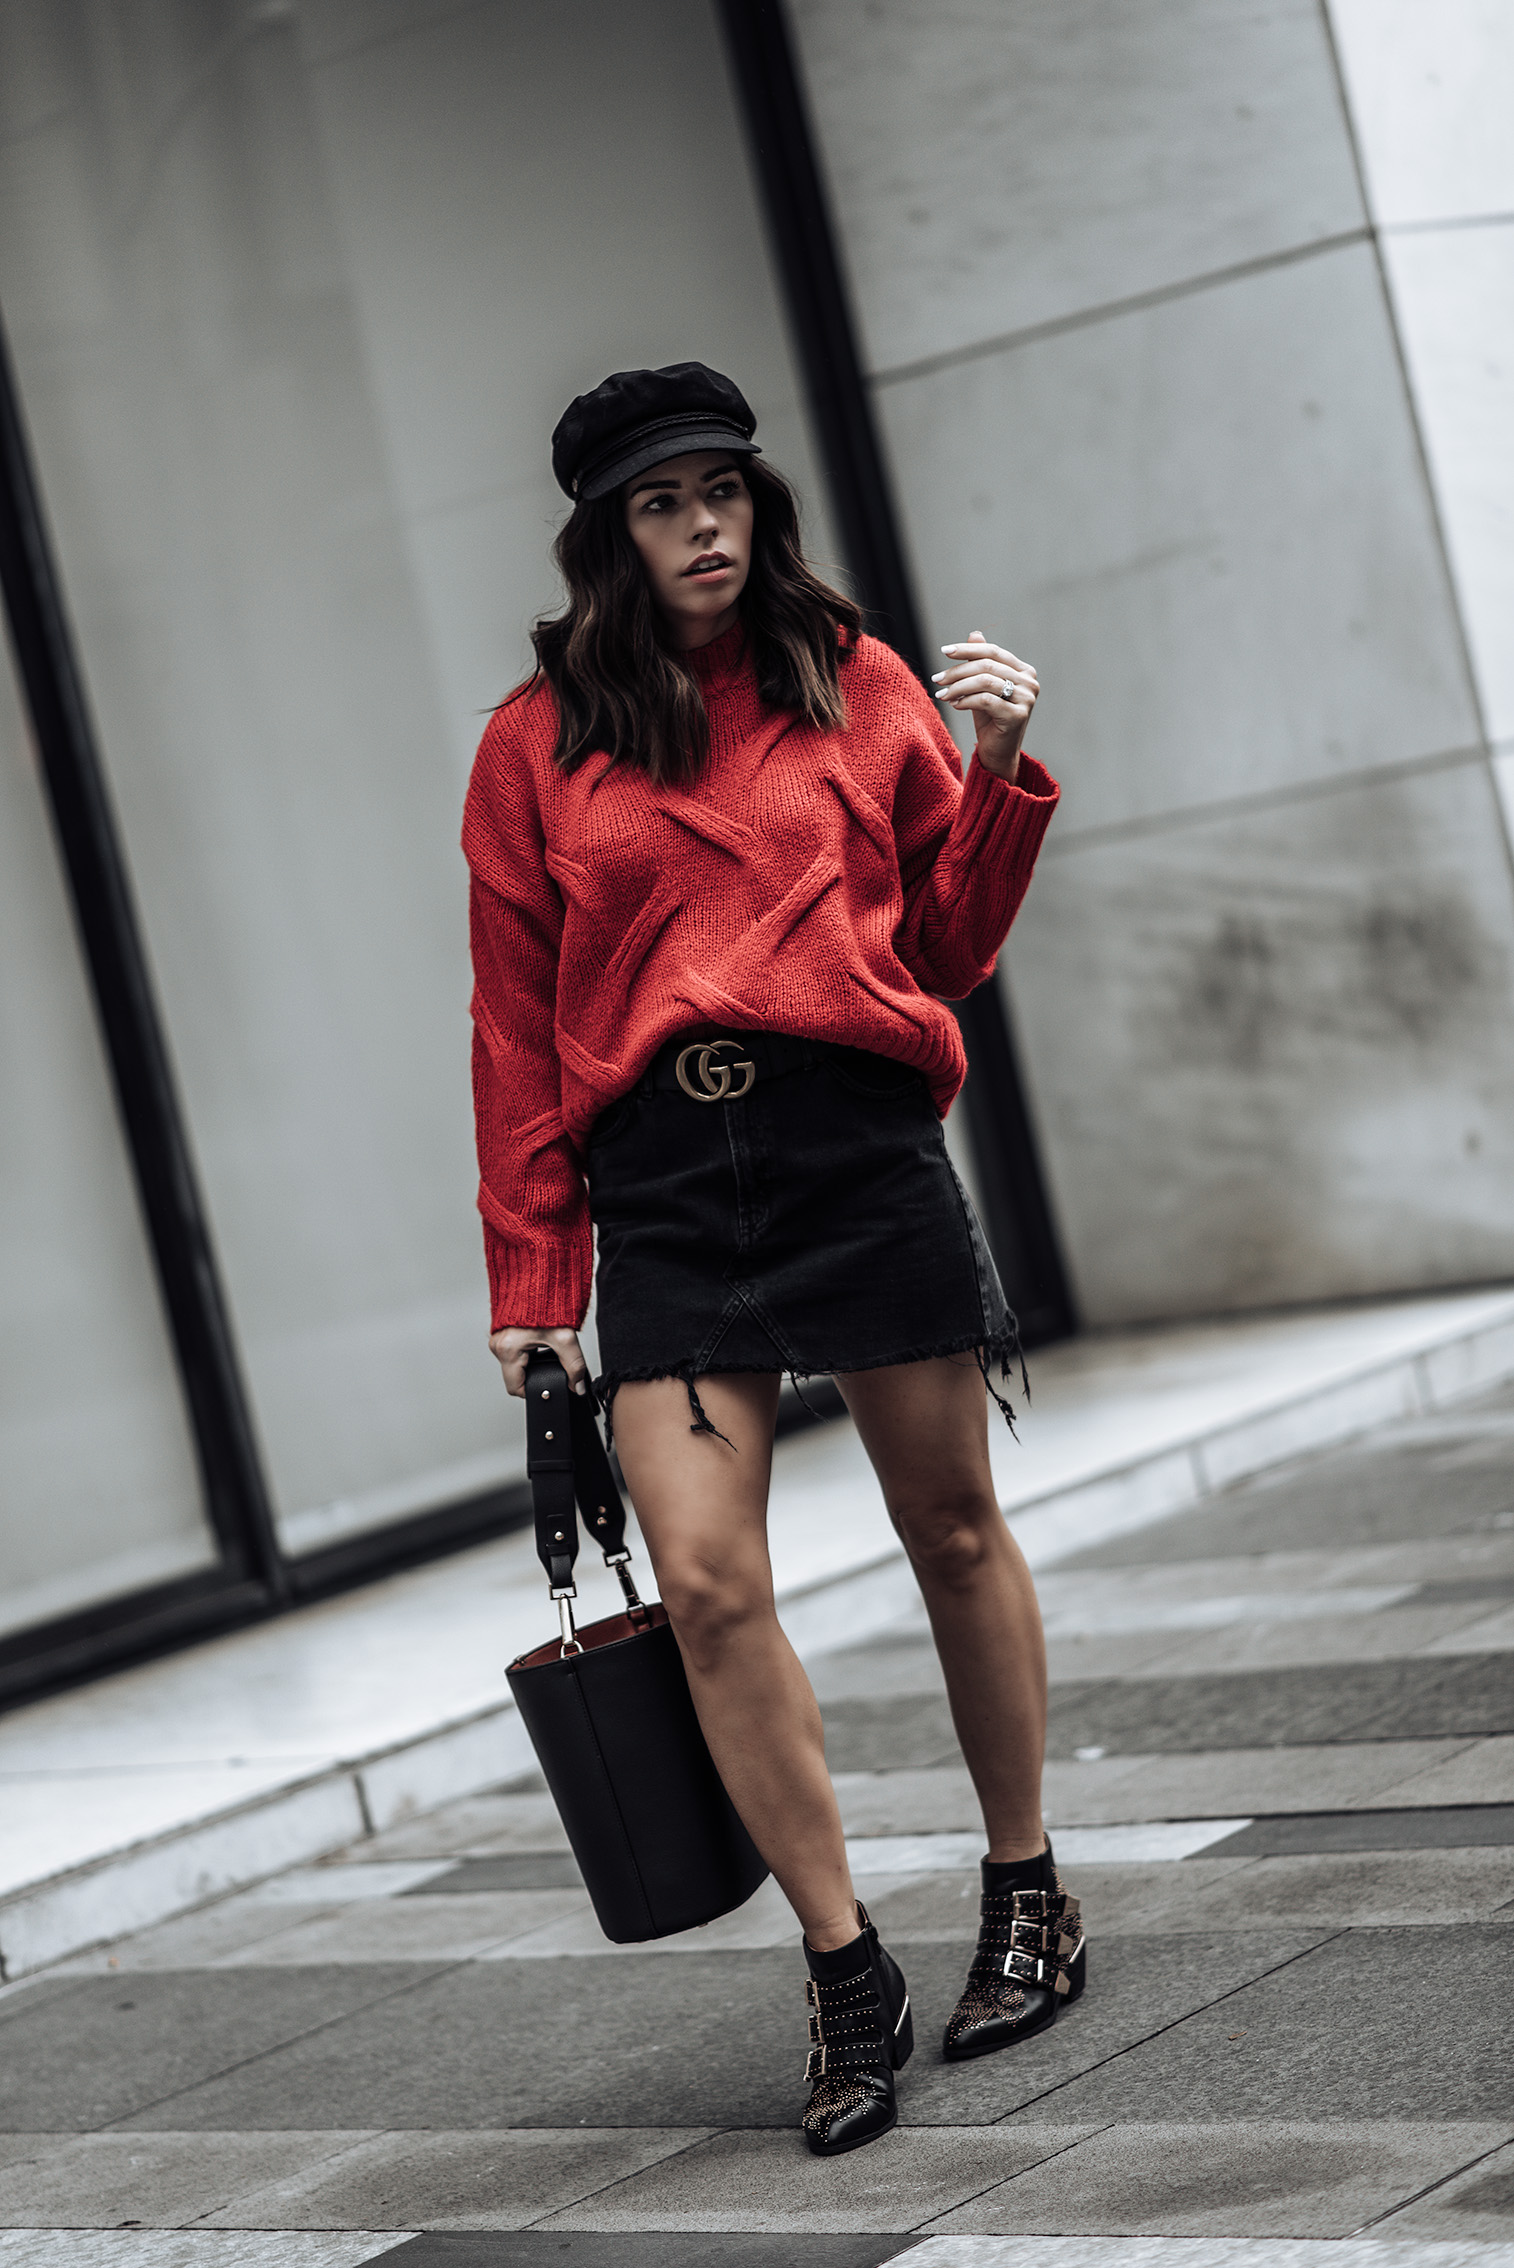 Red & Black | Red knit sweater (similar here and here) | Bucket bag (similar style here for only $25) | Black denim high waist mini skirt | Gucci Belt